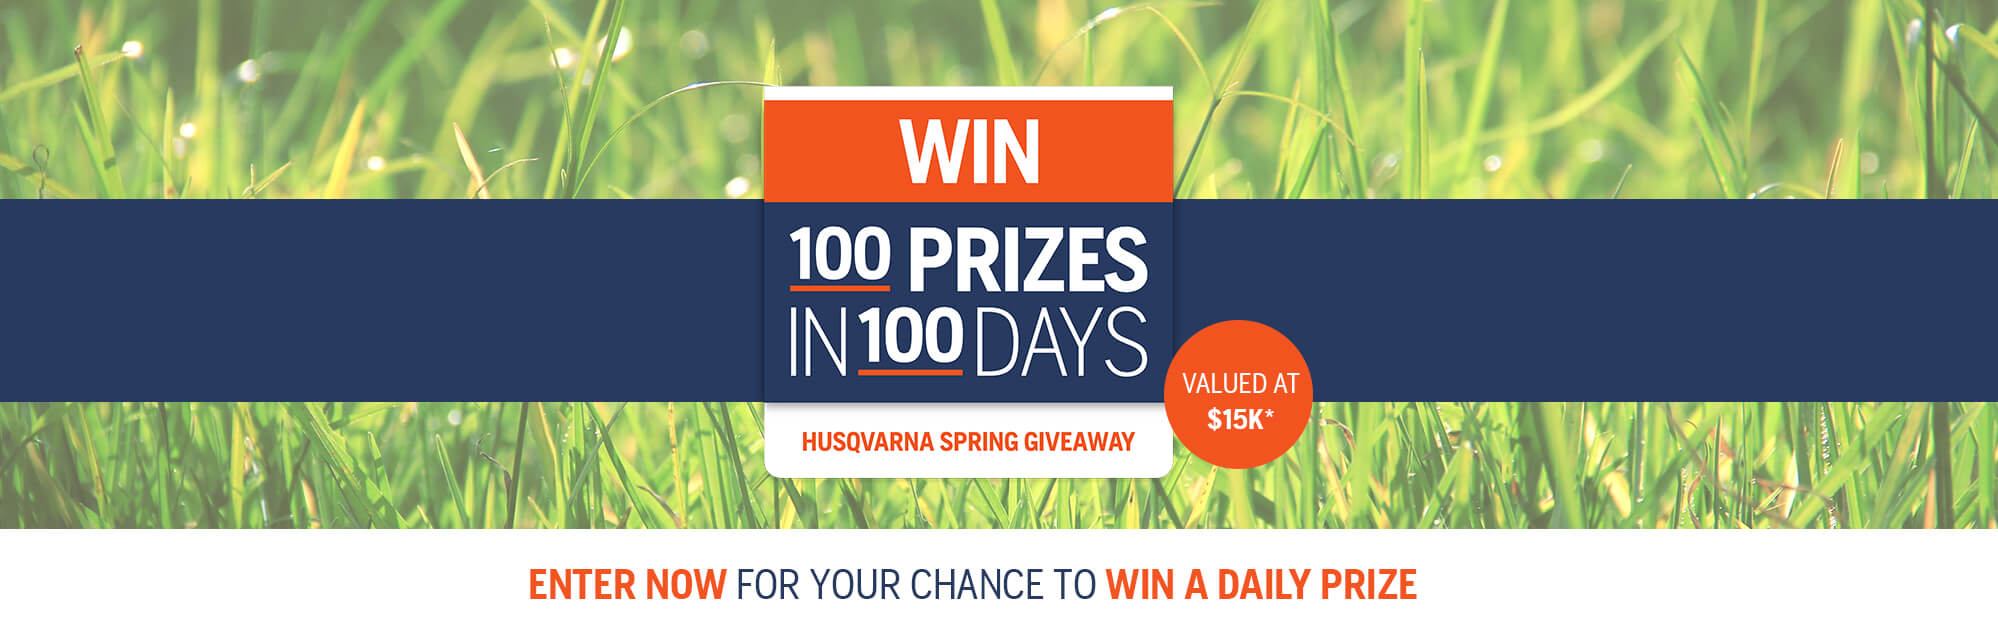 Win Prizes in 100 days